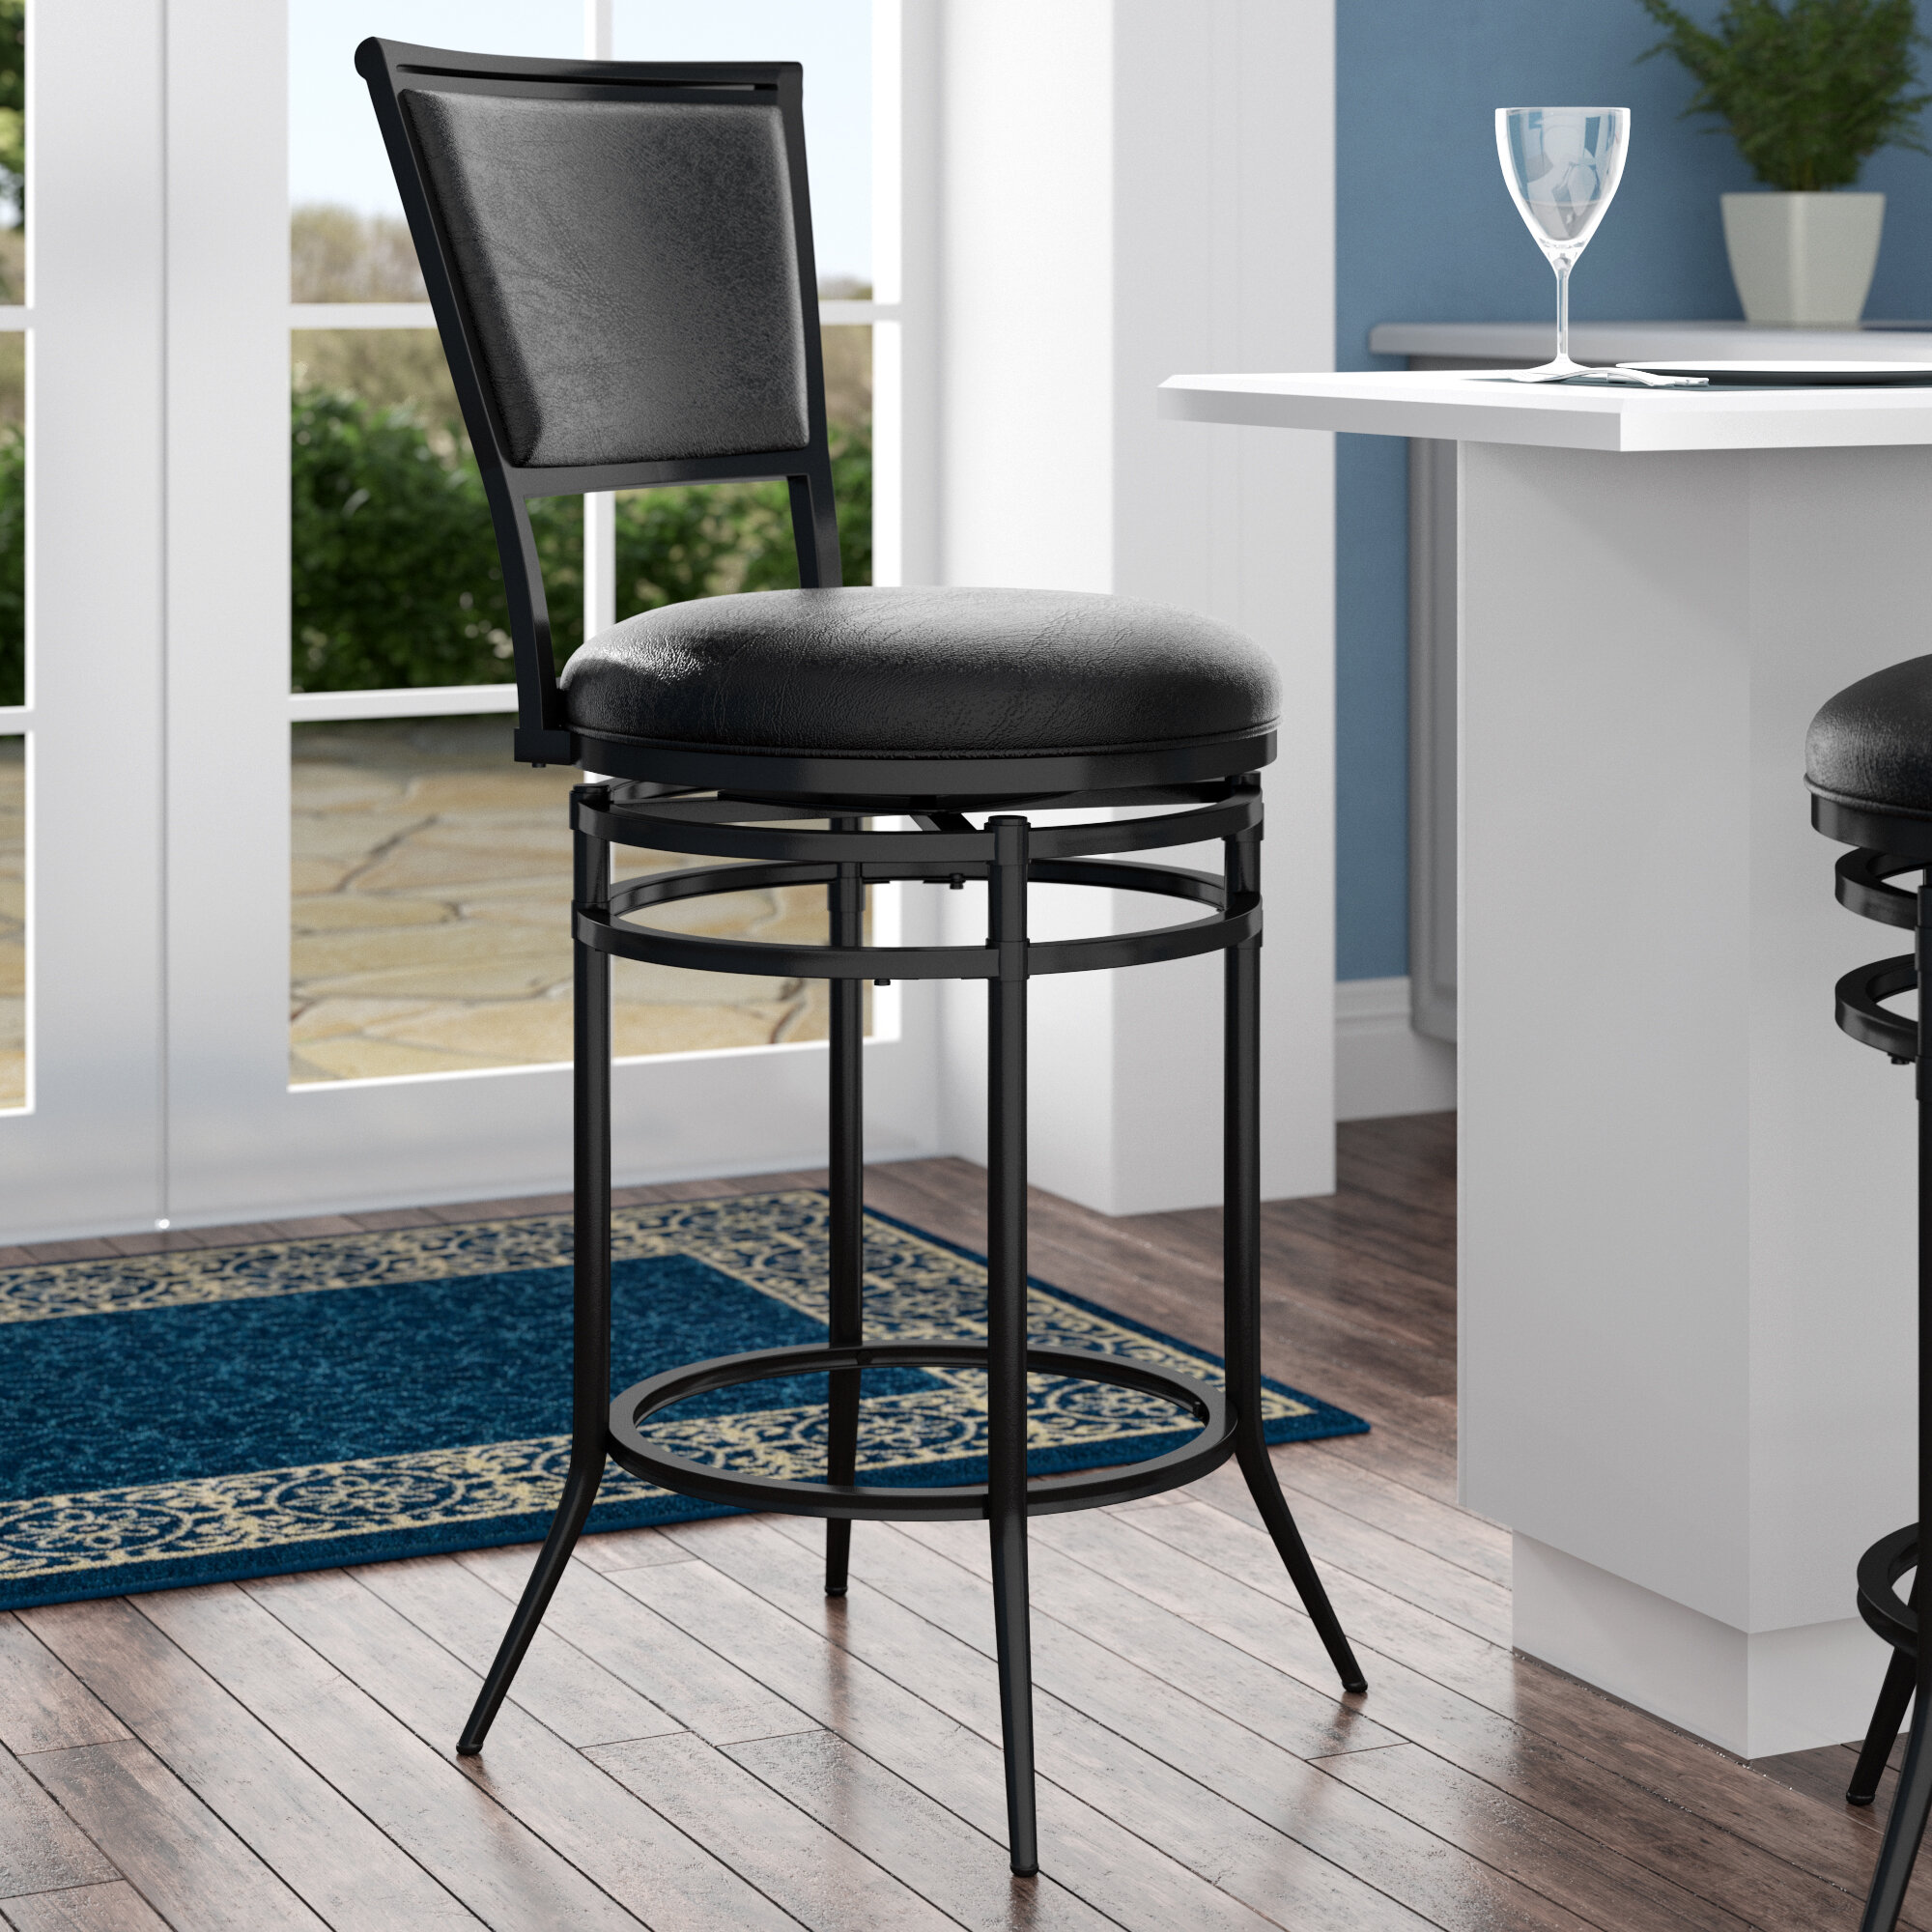 Miraculous Darby Home Co Massena Bar Counter Swivel Stool Reviews Dailytribune Chair Design For Home Dailytribuneorg